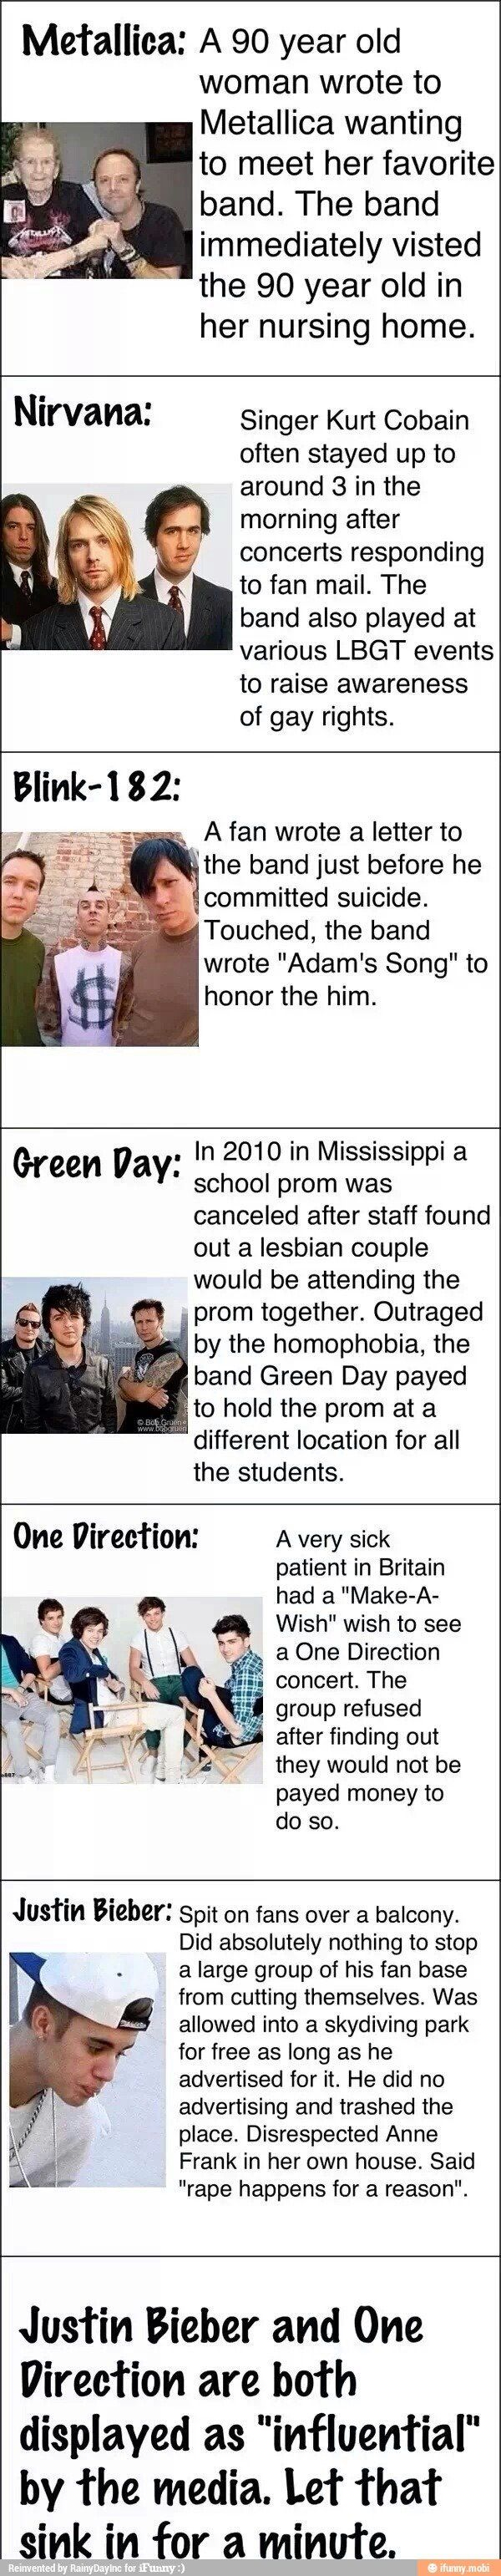 Looks like ROCK bands beat Pop musicians, everyday of the year! < although i dont consider one direction rock lol